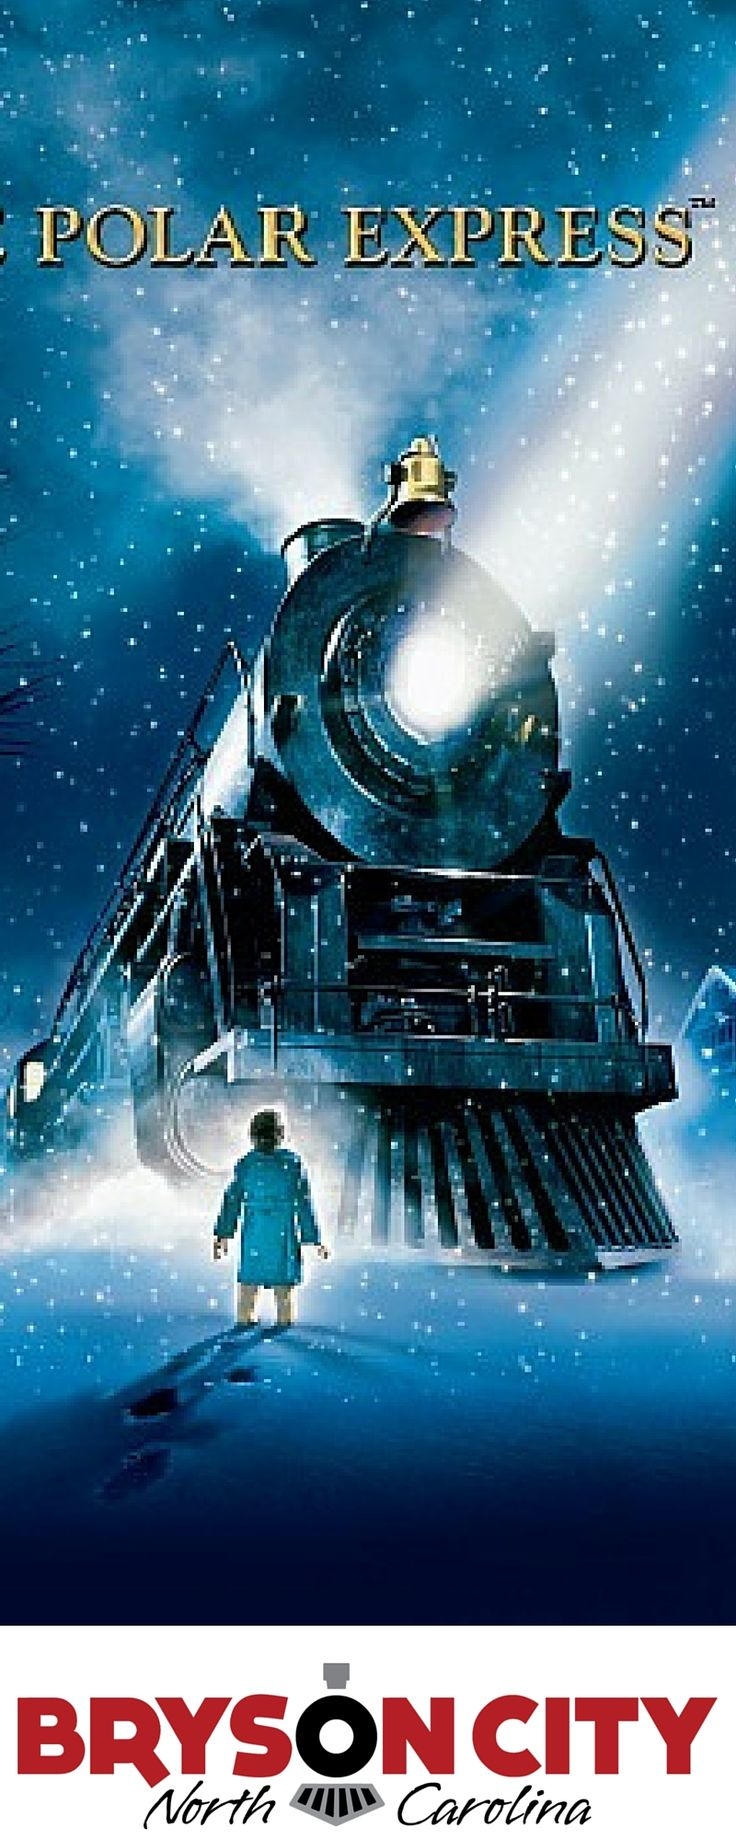 Experience the magic of the holidays on the Polar Express train ride running now through January 3, 2016, and departing from the Great Smoky Mountains Railroad train depot in downtown Bryson City. Enjoy costumed characters from the book, treats on the way and a visit from Santa. And make sure to wear your jammies on the trip! Tickets: https://rezeast.net/gsmr/polar15.aspx. Find a place to stay: http://www.greatsmokies.com/lodging.html